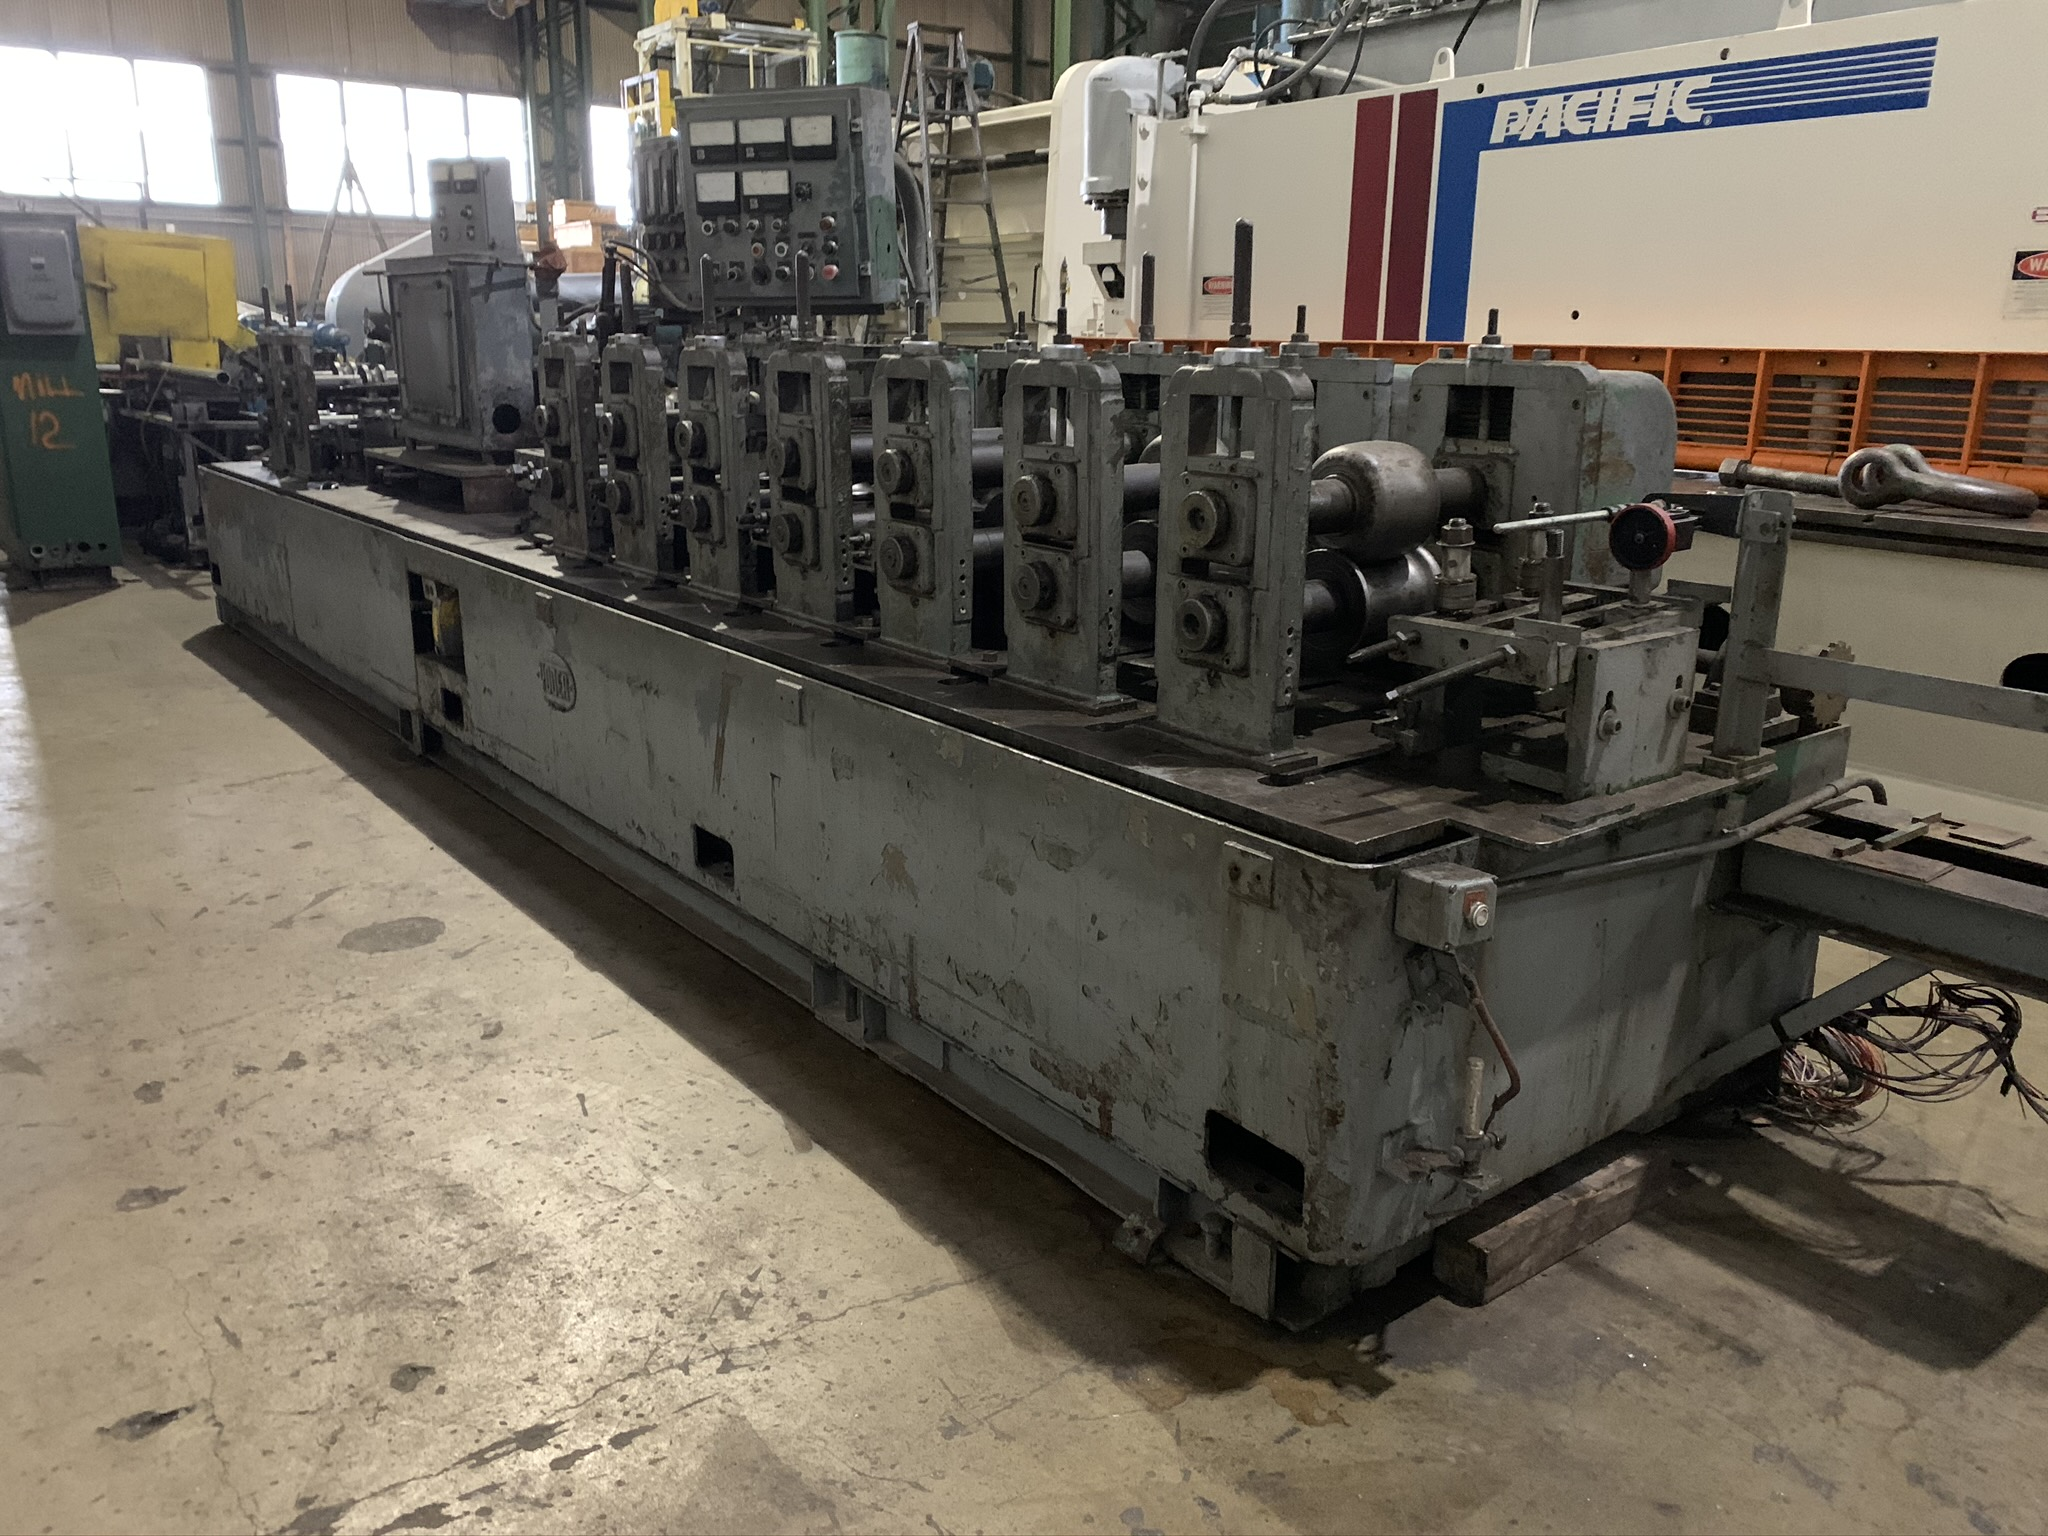 YODER MODEL M2.5 TUBE MILL; S/N C0-1424, 9-STAND 4-BREADKDOWN STANDS, (3) FINISHING STANDS, (2) - Image 4 of 8